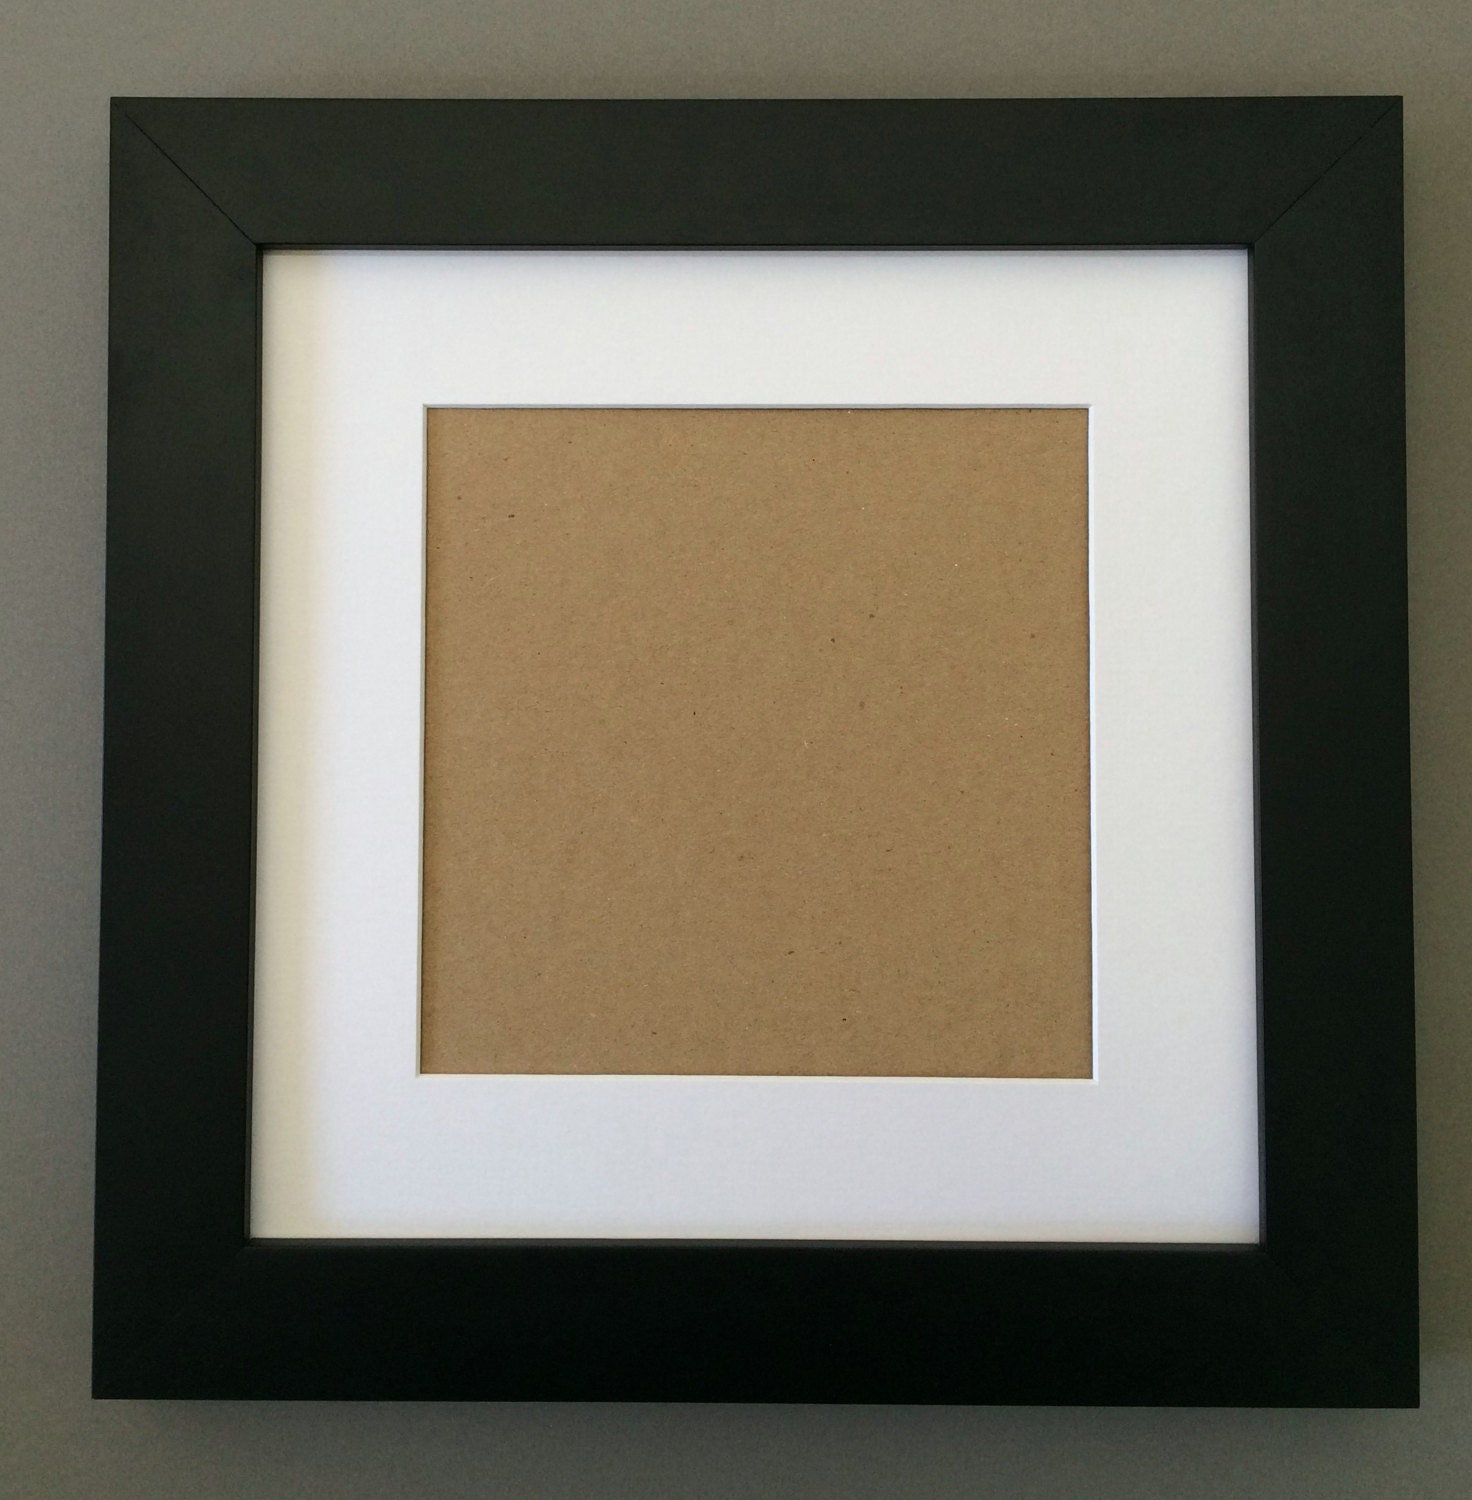 10x10 Square Black Picture Frame With White Mat For 6x6